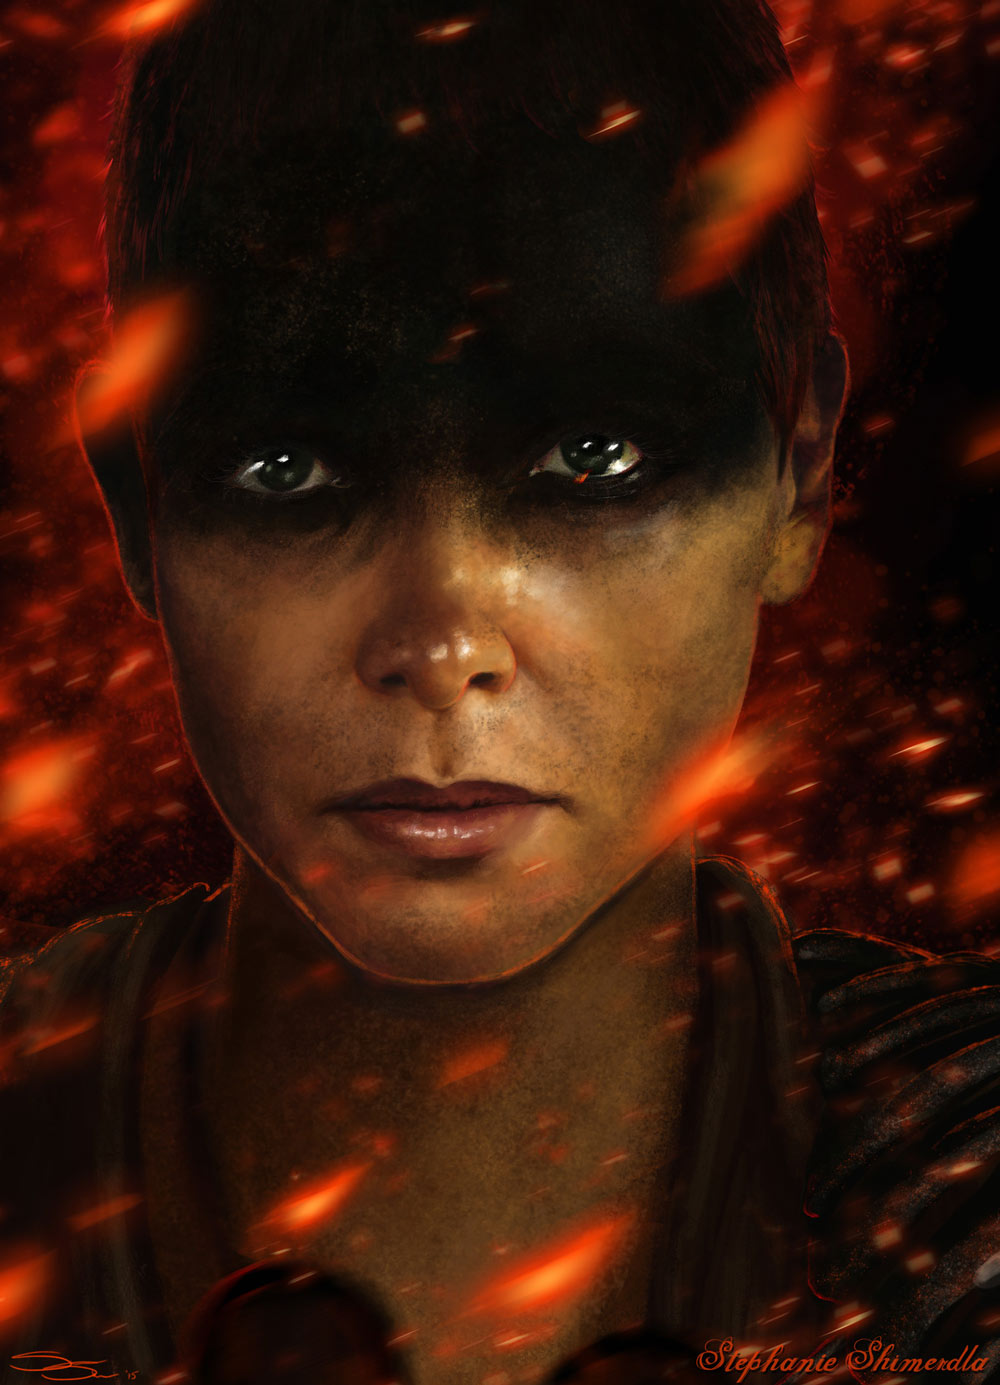 'Furiosa' by Stephanie Shimerdla